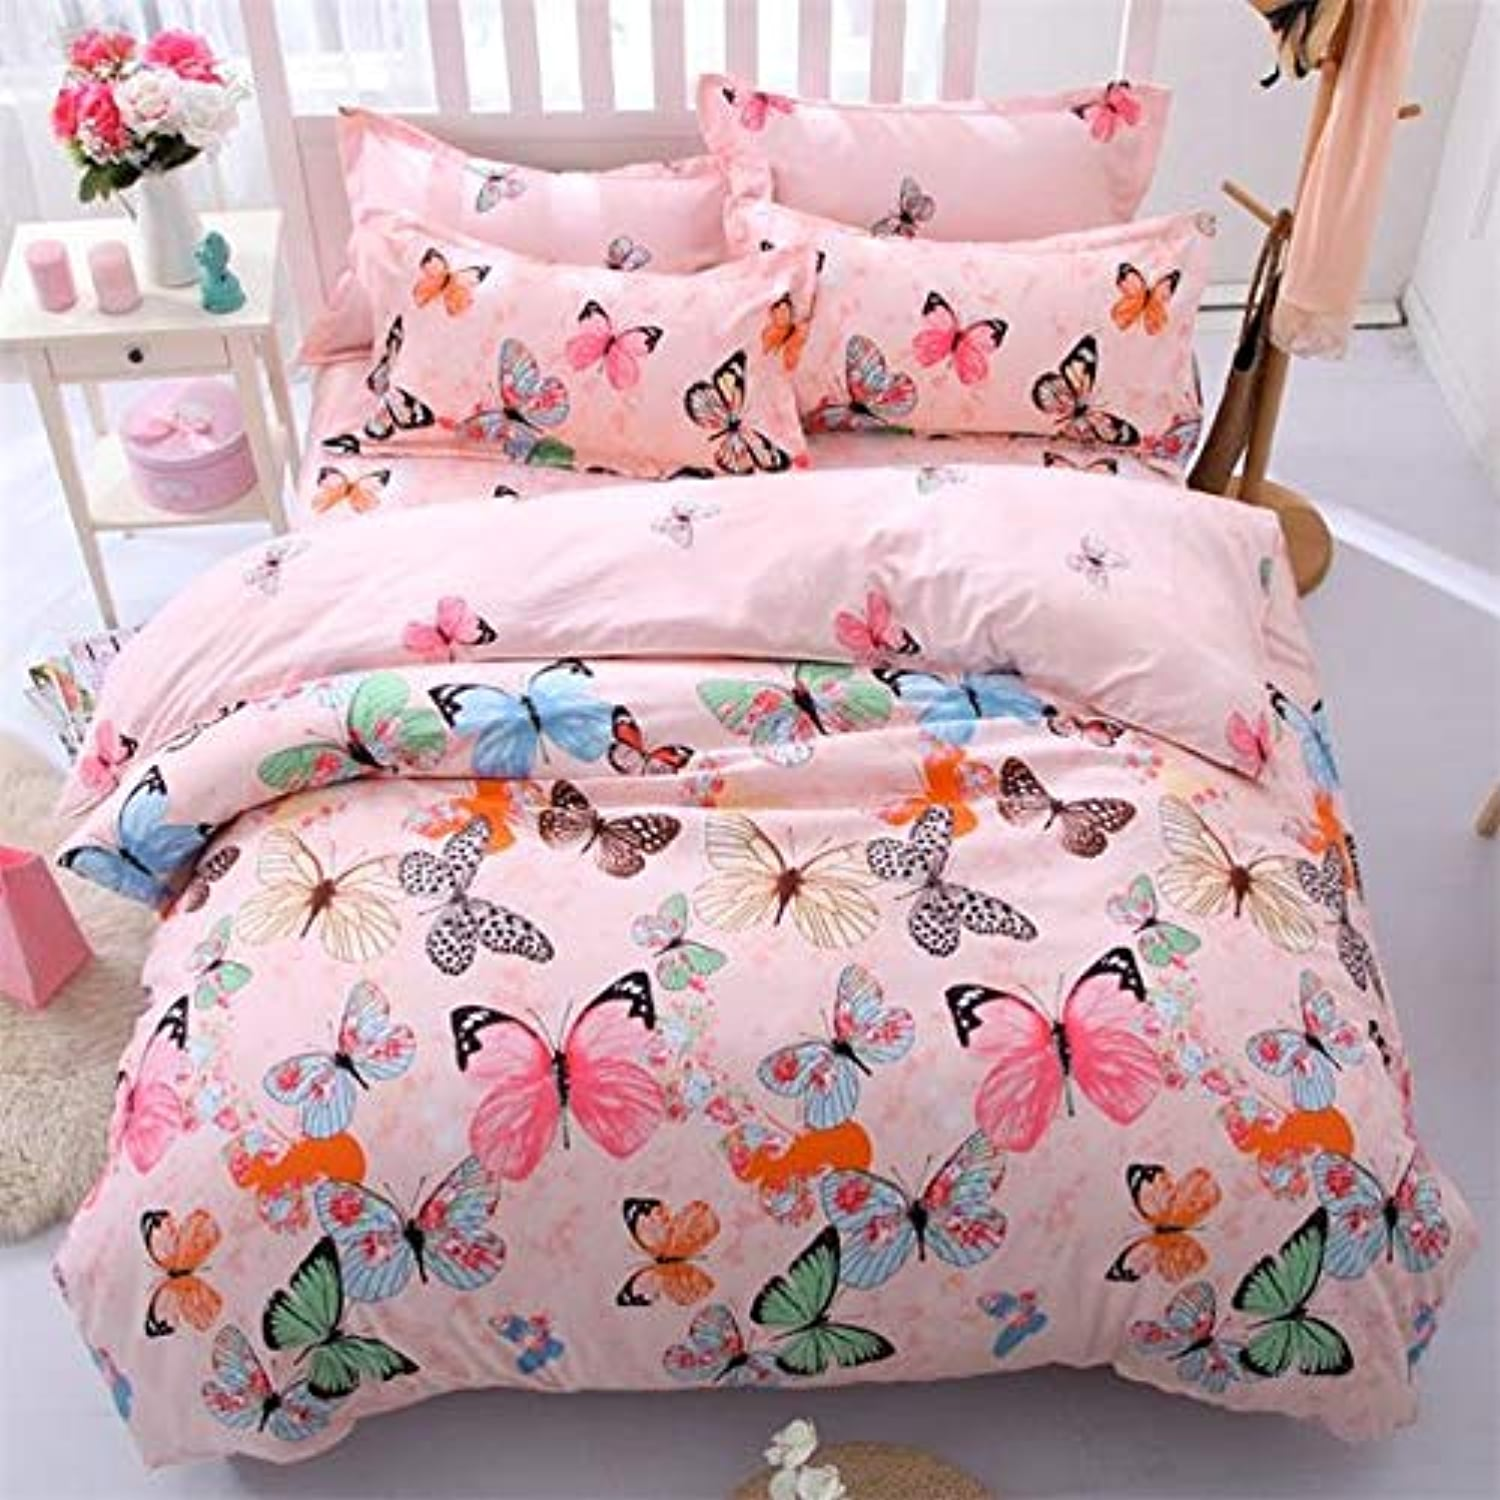 Easy voituree 3   4PCS Coton Simple Draps Lit Princesse Literie Single Full Queen Twin Taille Enfants Literie Couette Ensemble Literie Linge de lit Housse de couette + drap plat + Taie d'oreiller ,Sets de